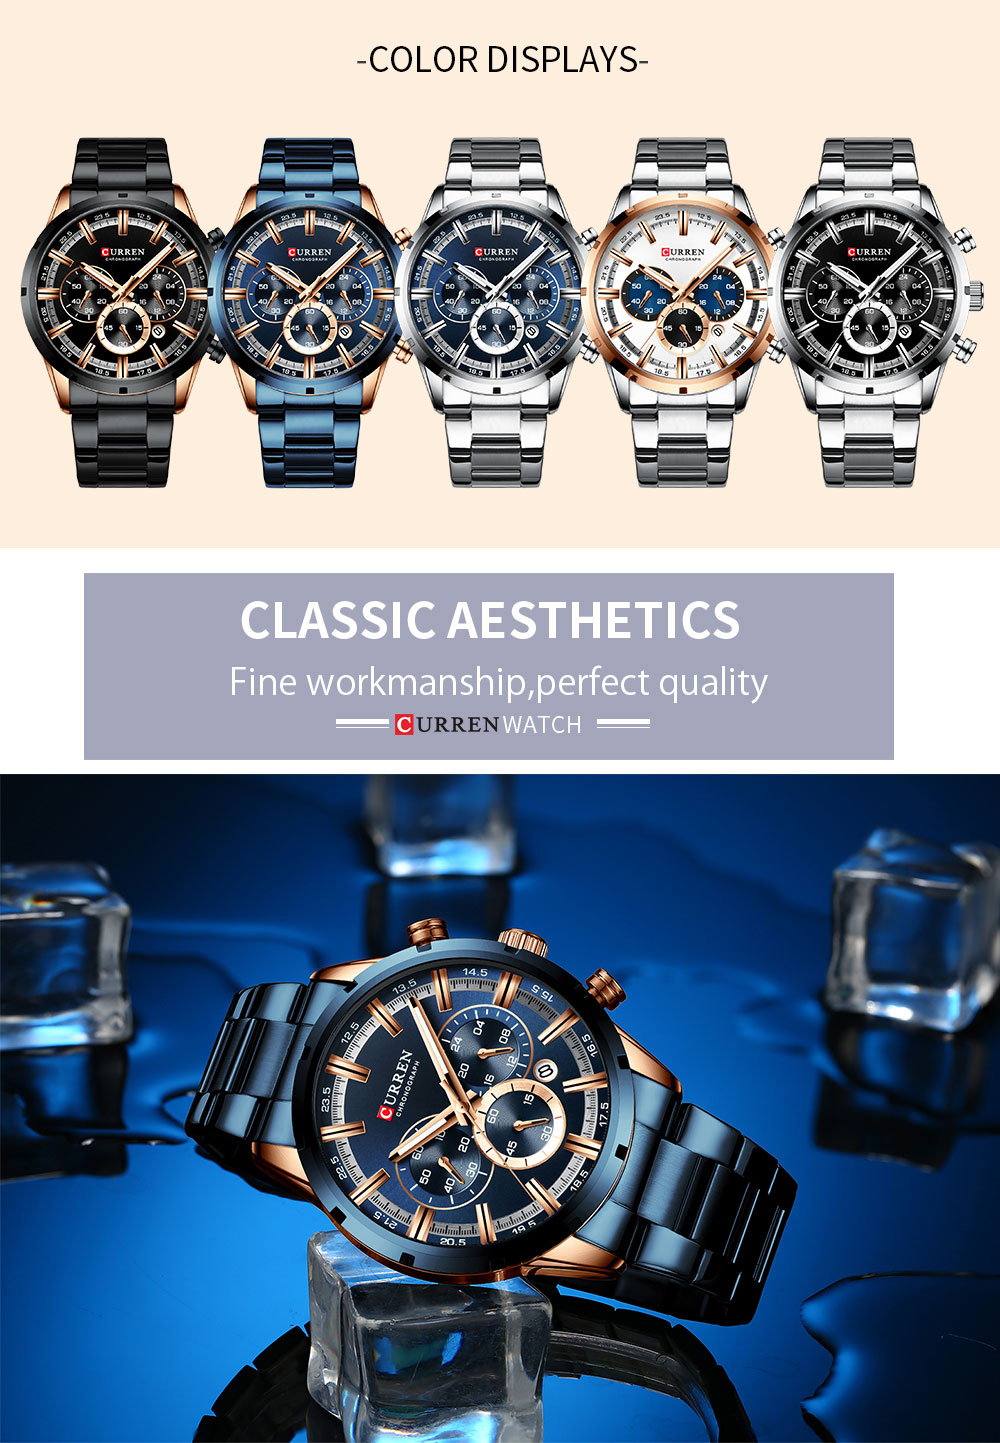 CURREN New Fashion Mens Watches with Stainless Steel Top Brand Luxury Sports Chronograph Quartz Watch Men Relogio Masculino H27617f536c4d4940b63c54ff4e6ba0cej